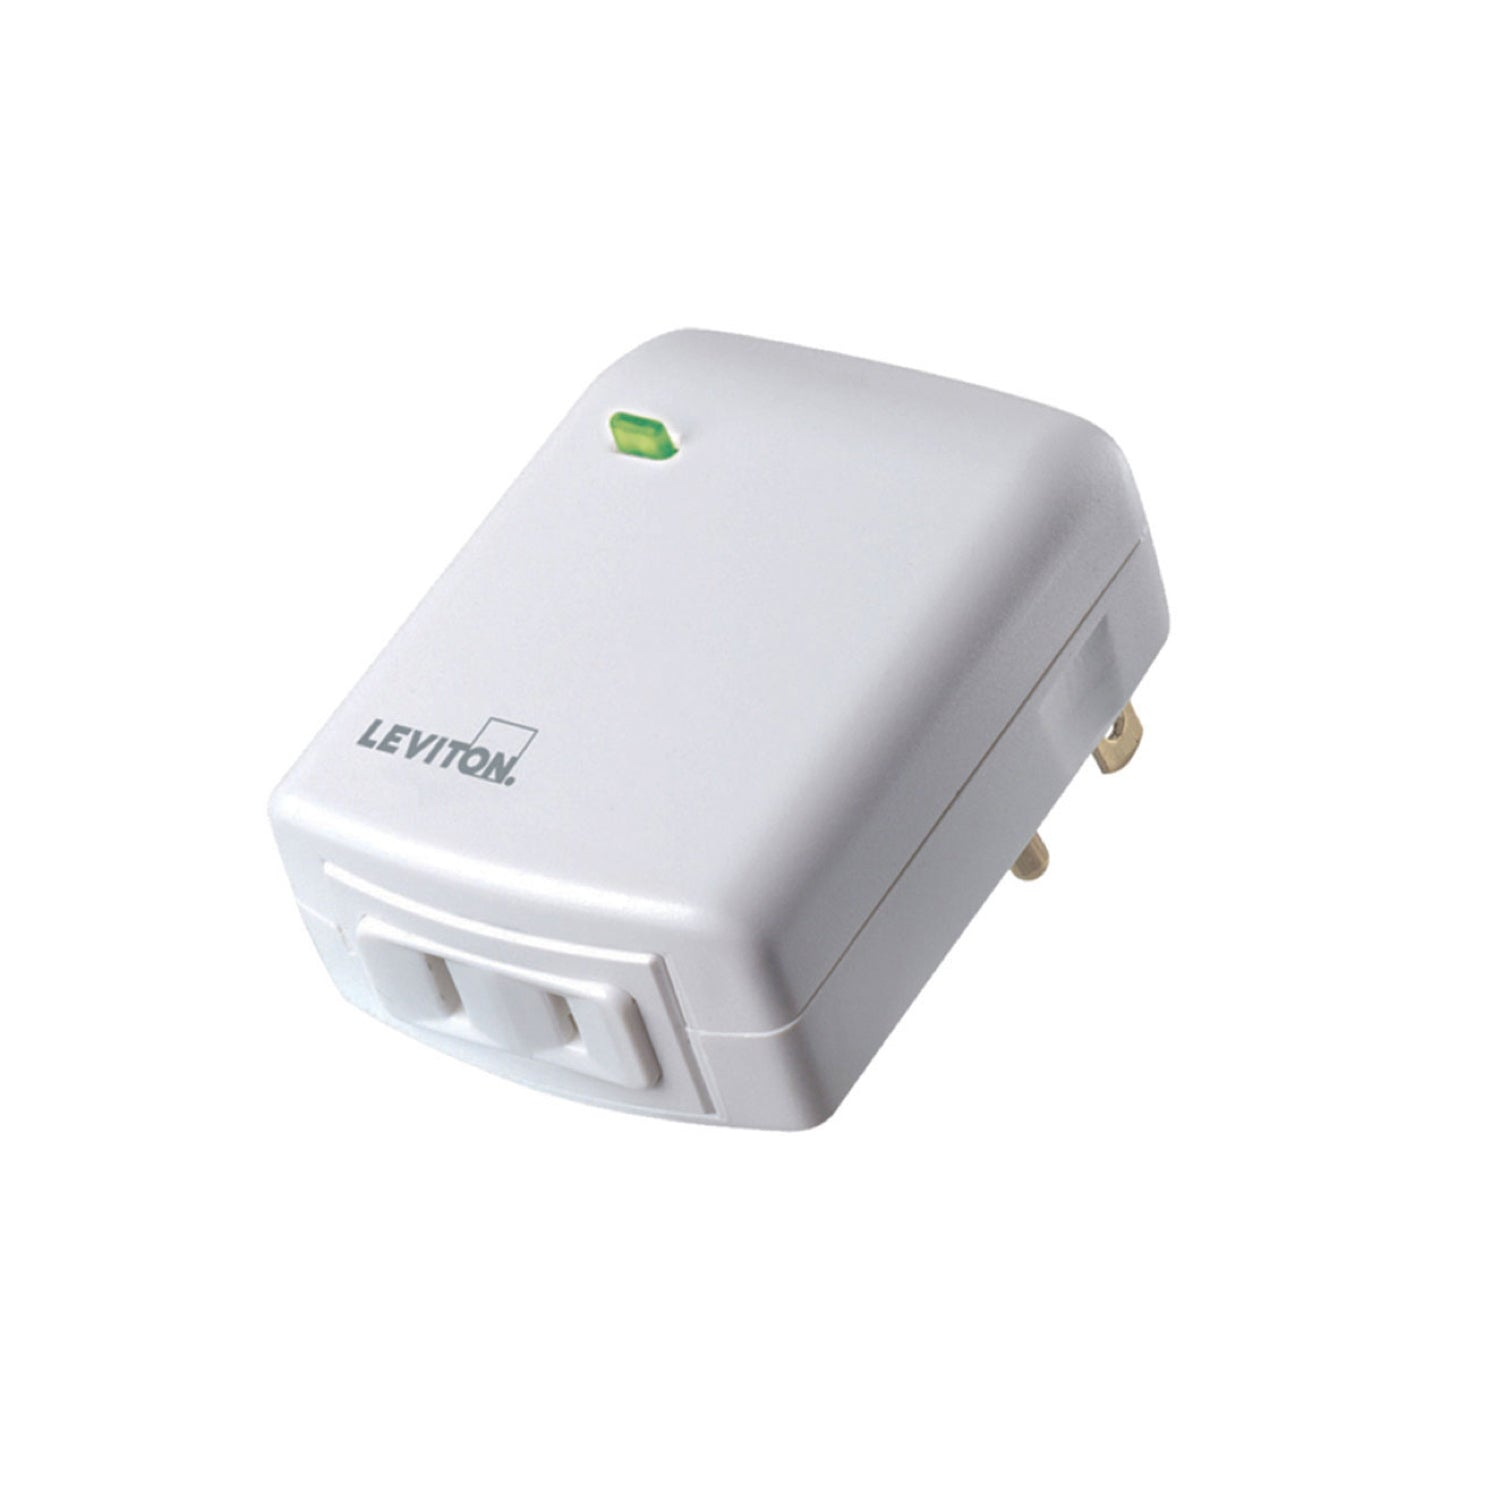 Leviton Decora Smart Plug-In Dimmer (for Works with Ring Alarm Security System) - White